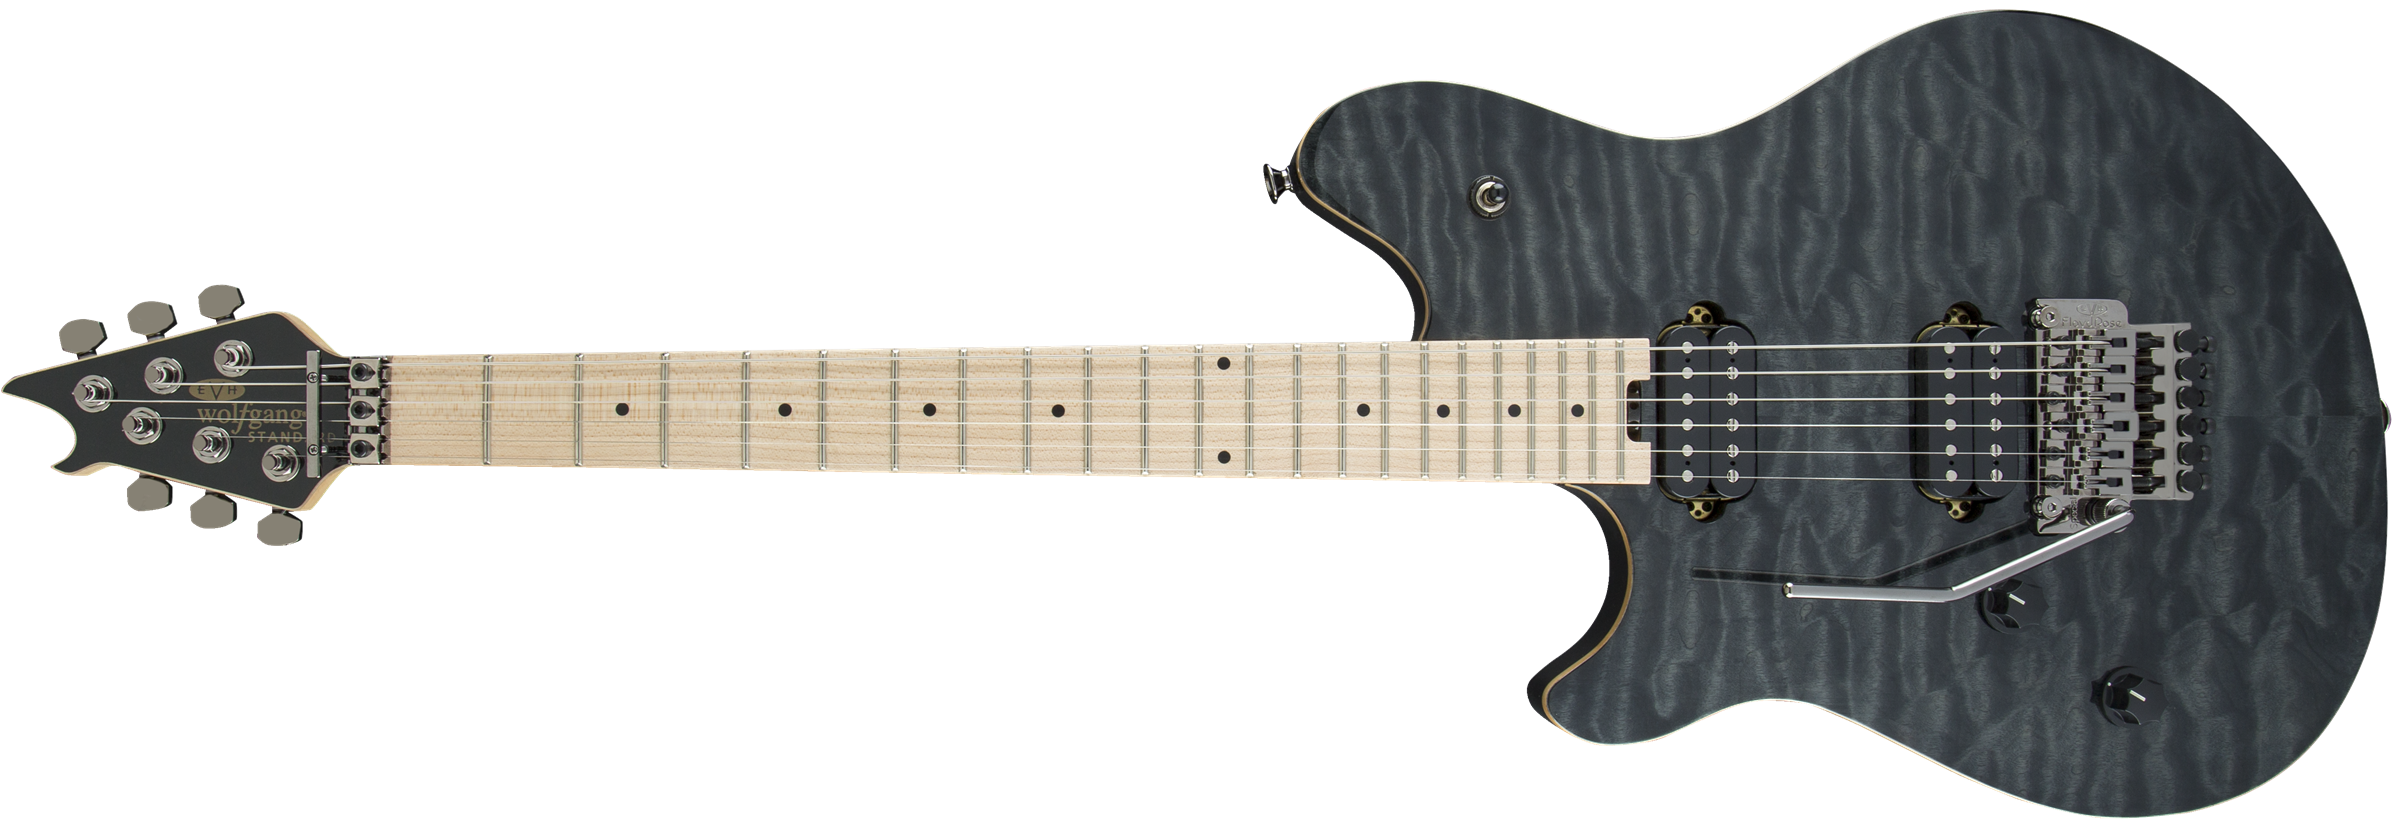 Wolfgang® WG Standard LH, Maple Fingerboard, Transparent Black